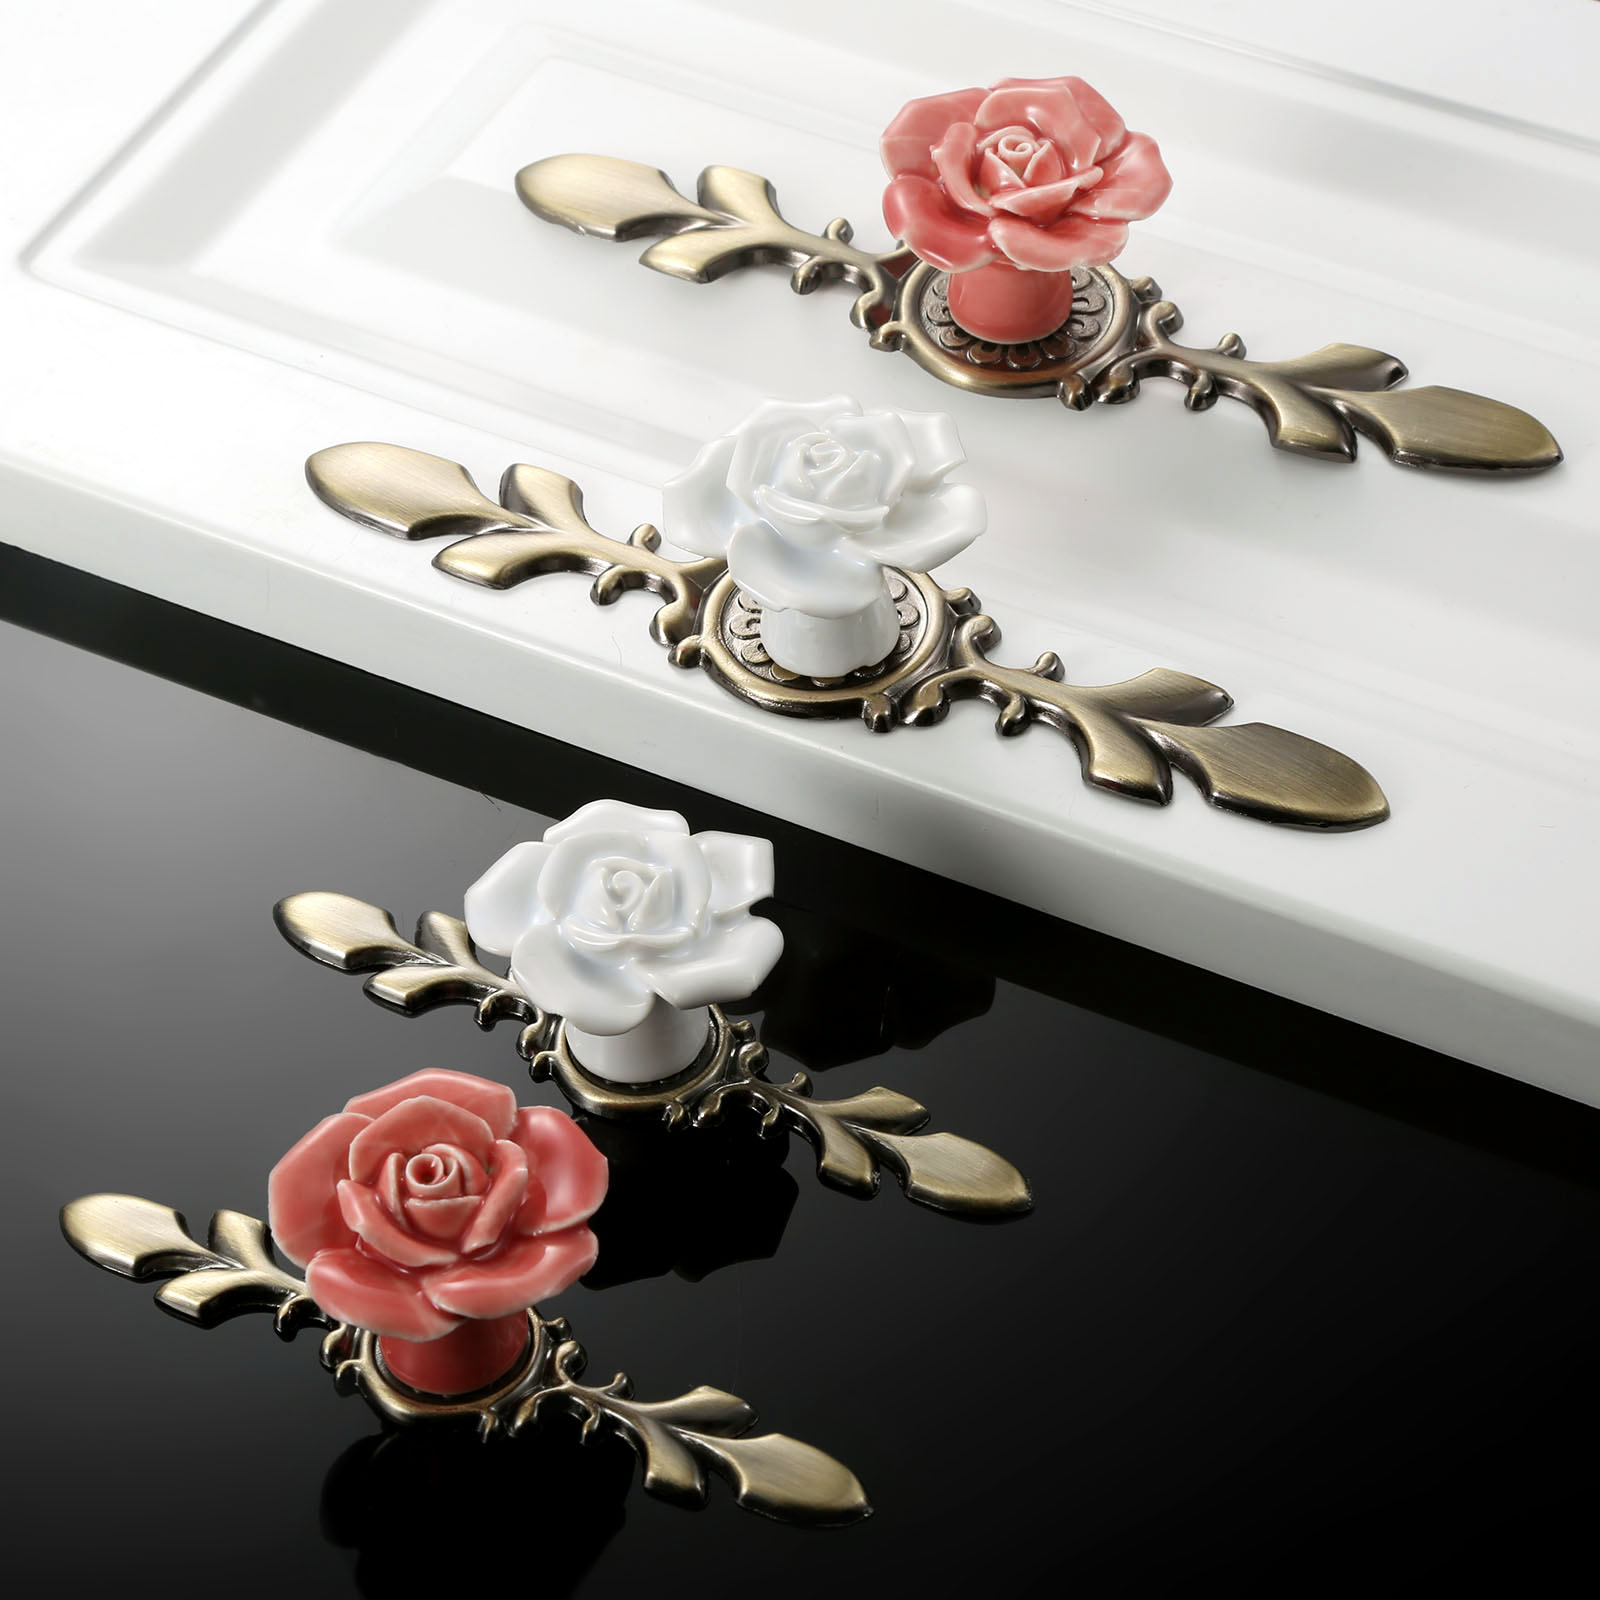 1Pc Door Handle Pink White Rose Vintage Ceramic Alloy Base Cabinet Knobs Cupboard Dresser Kitchen Furniture Door Pull Knob in Cabinet Pulls from Home Improvement